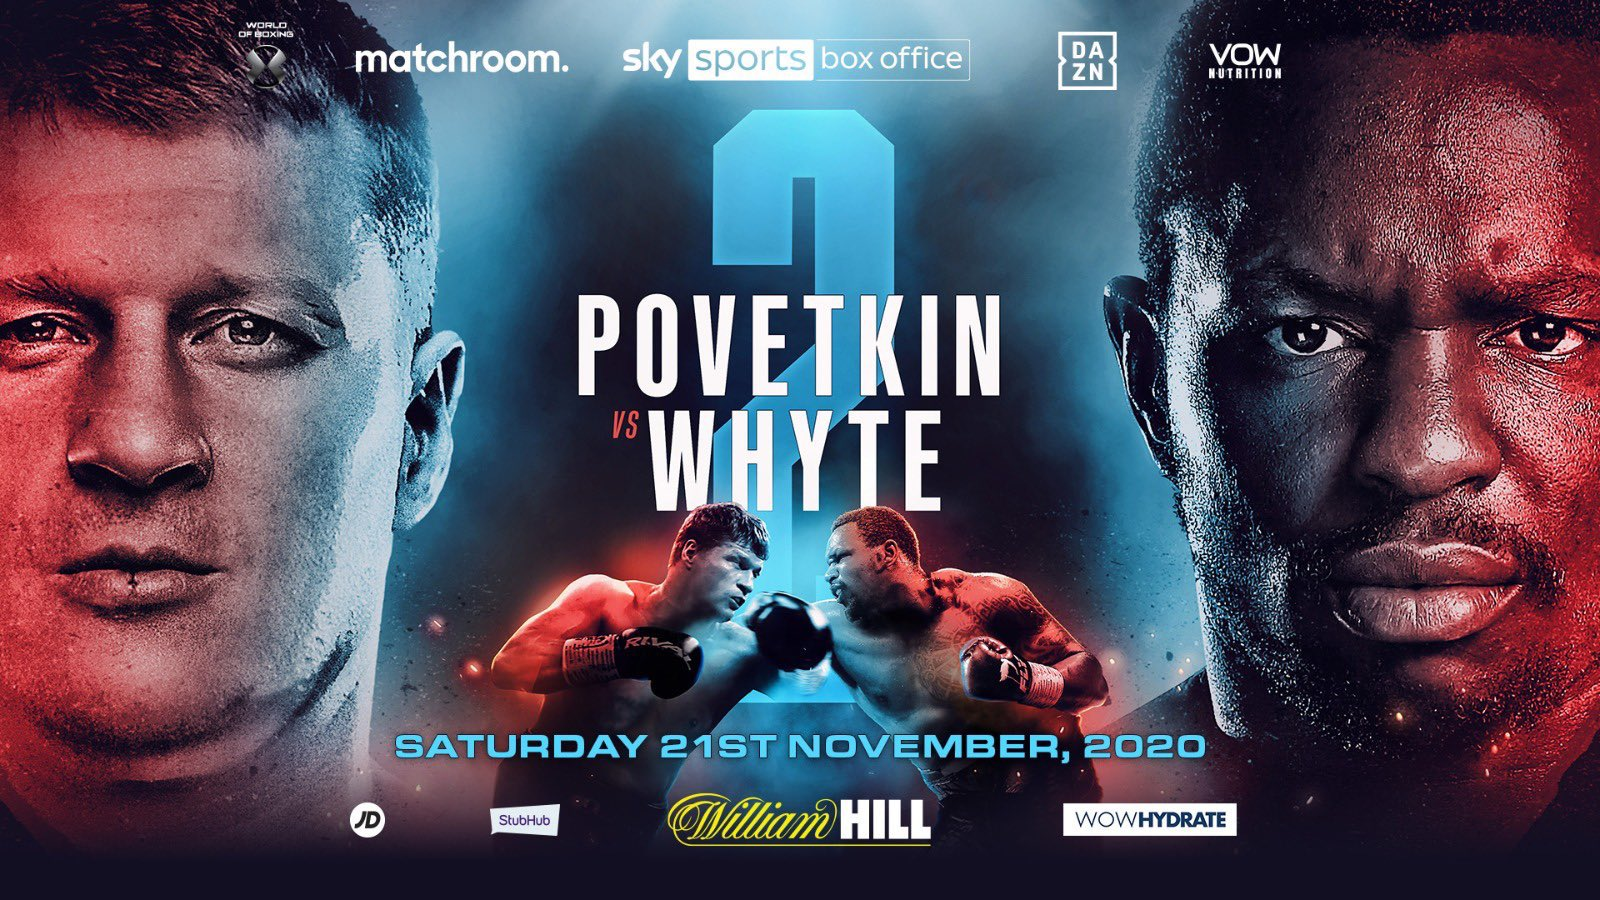 WhytePovetkin2 - Dillian Whyte vs Alexander Povetkin 2 Goes Down On November 21st